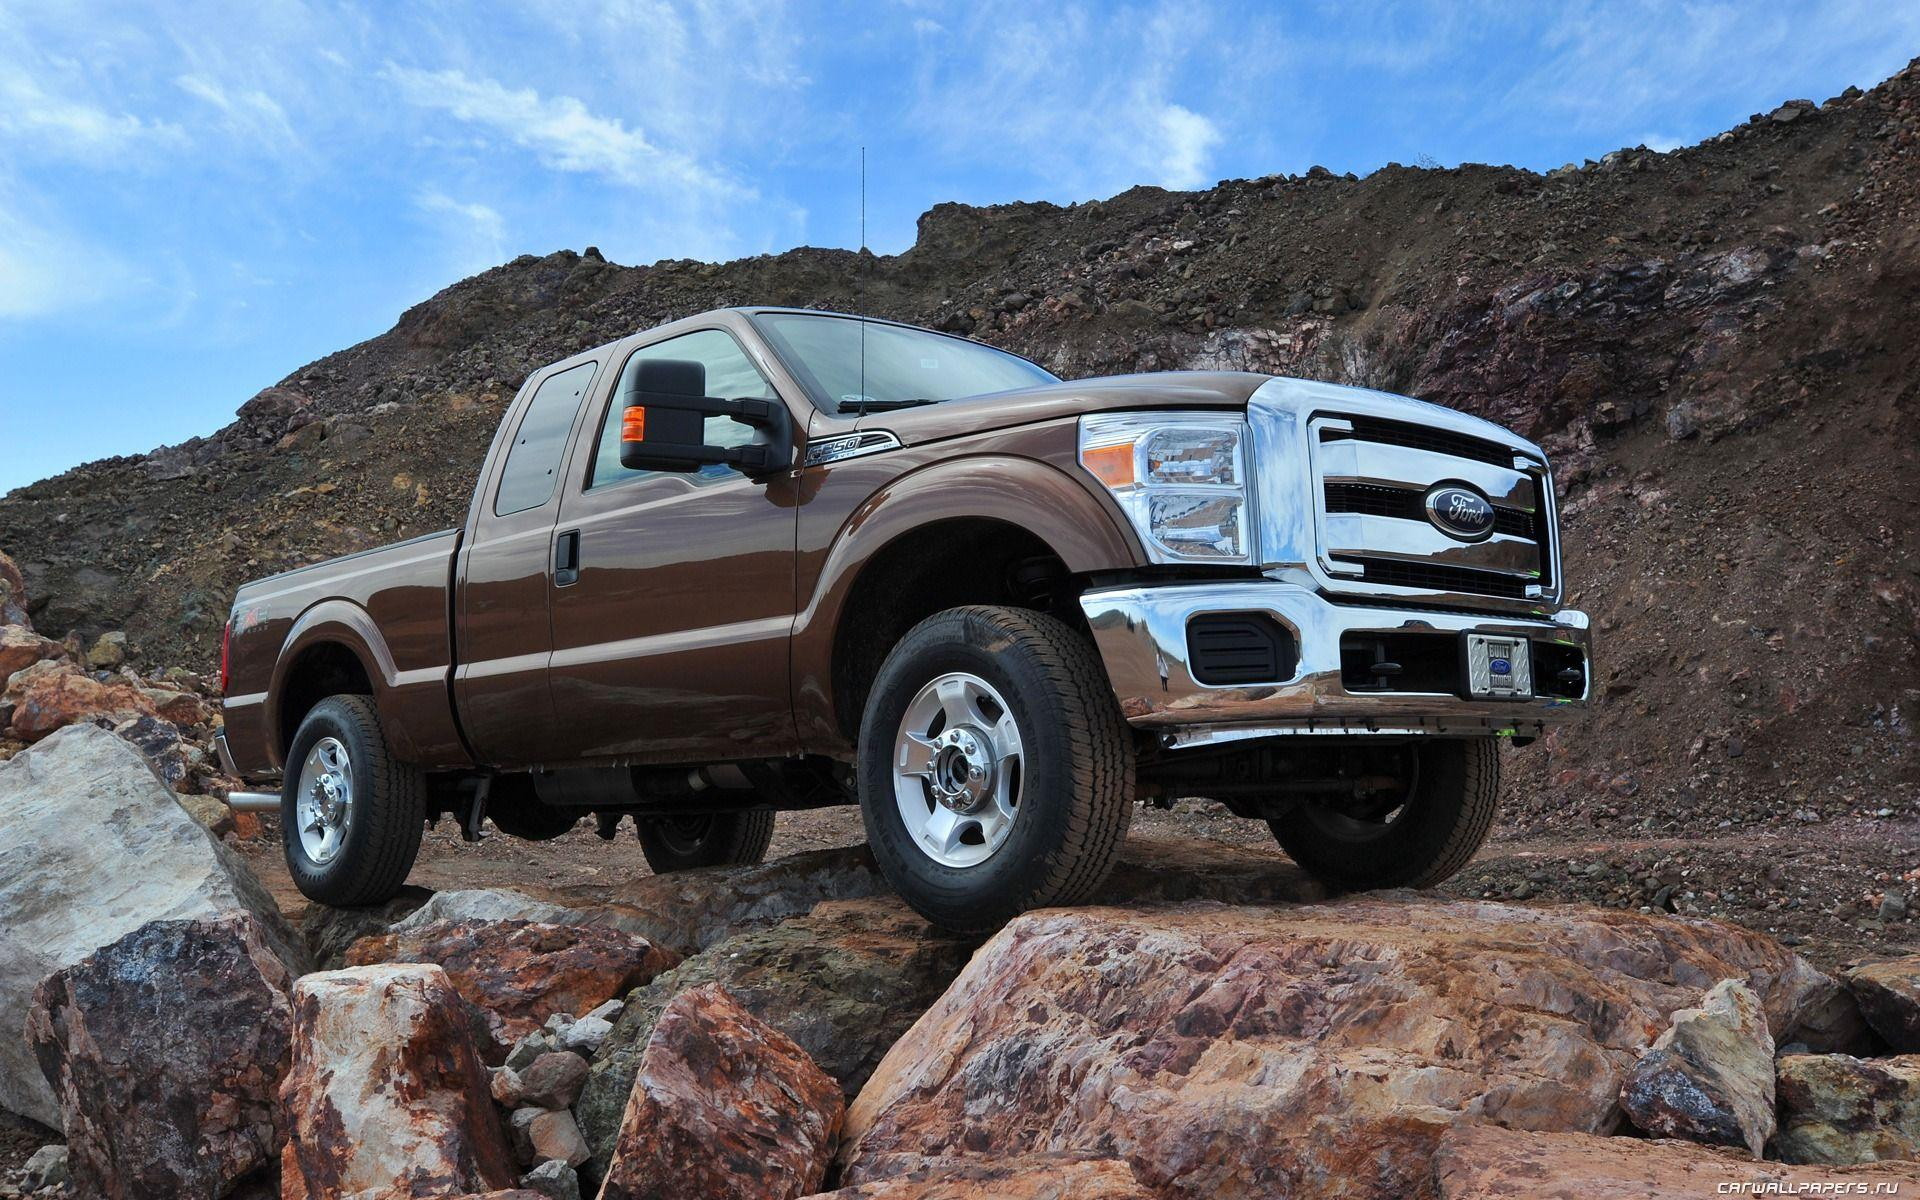 Ford F250 Super Duty - 2011 HD wallpaper #3 - 1920x1200 Wallpaper ...